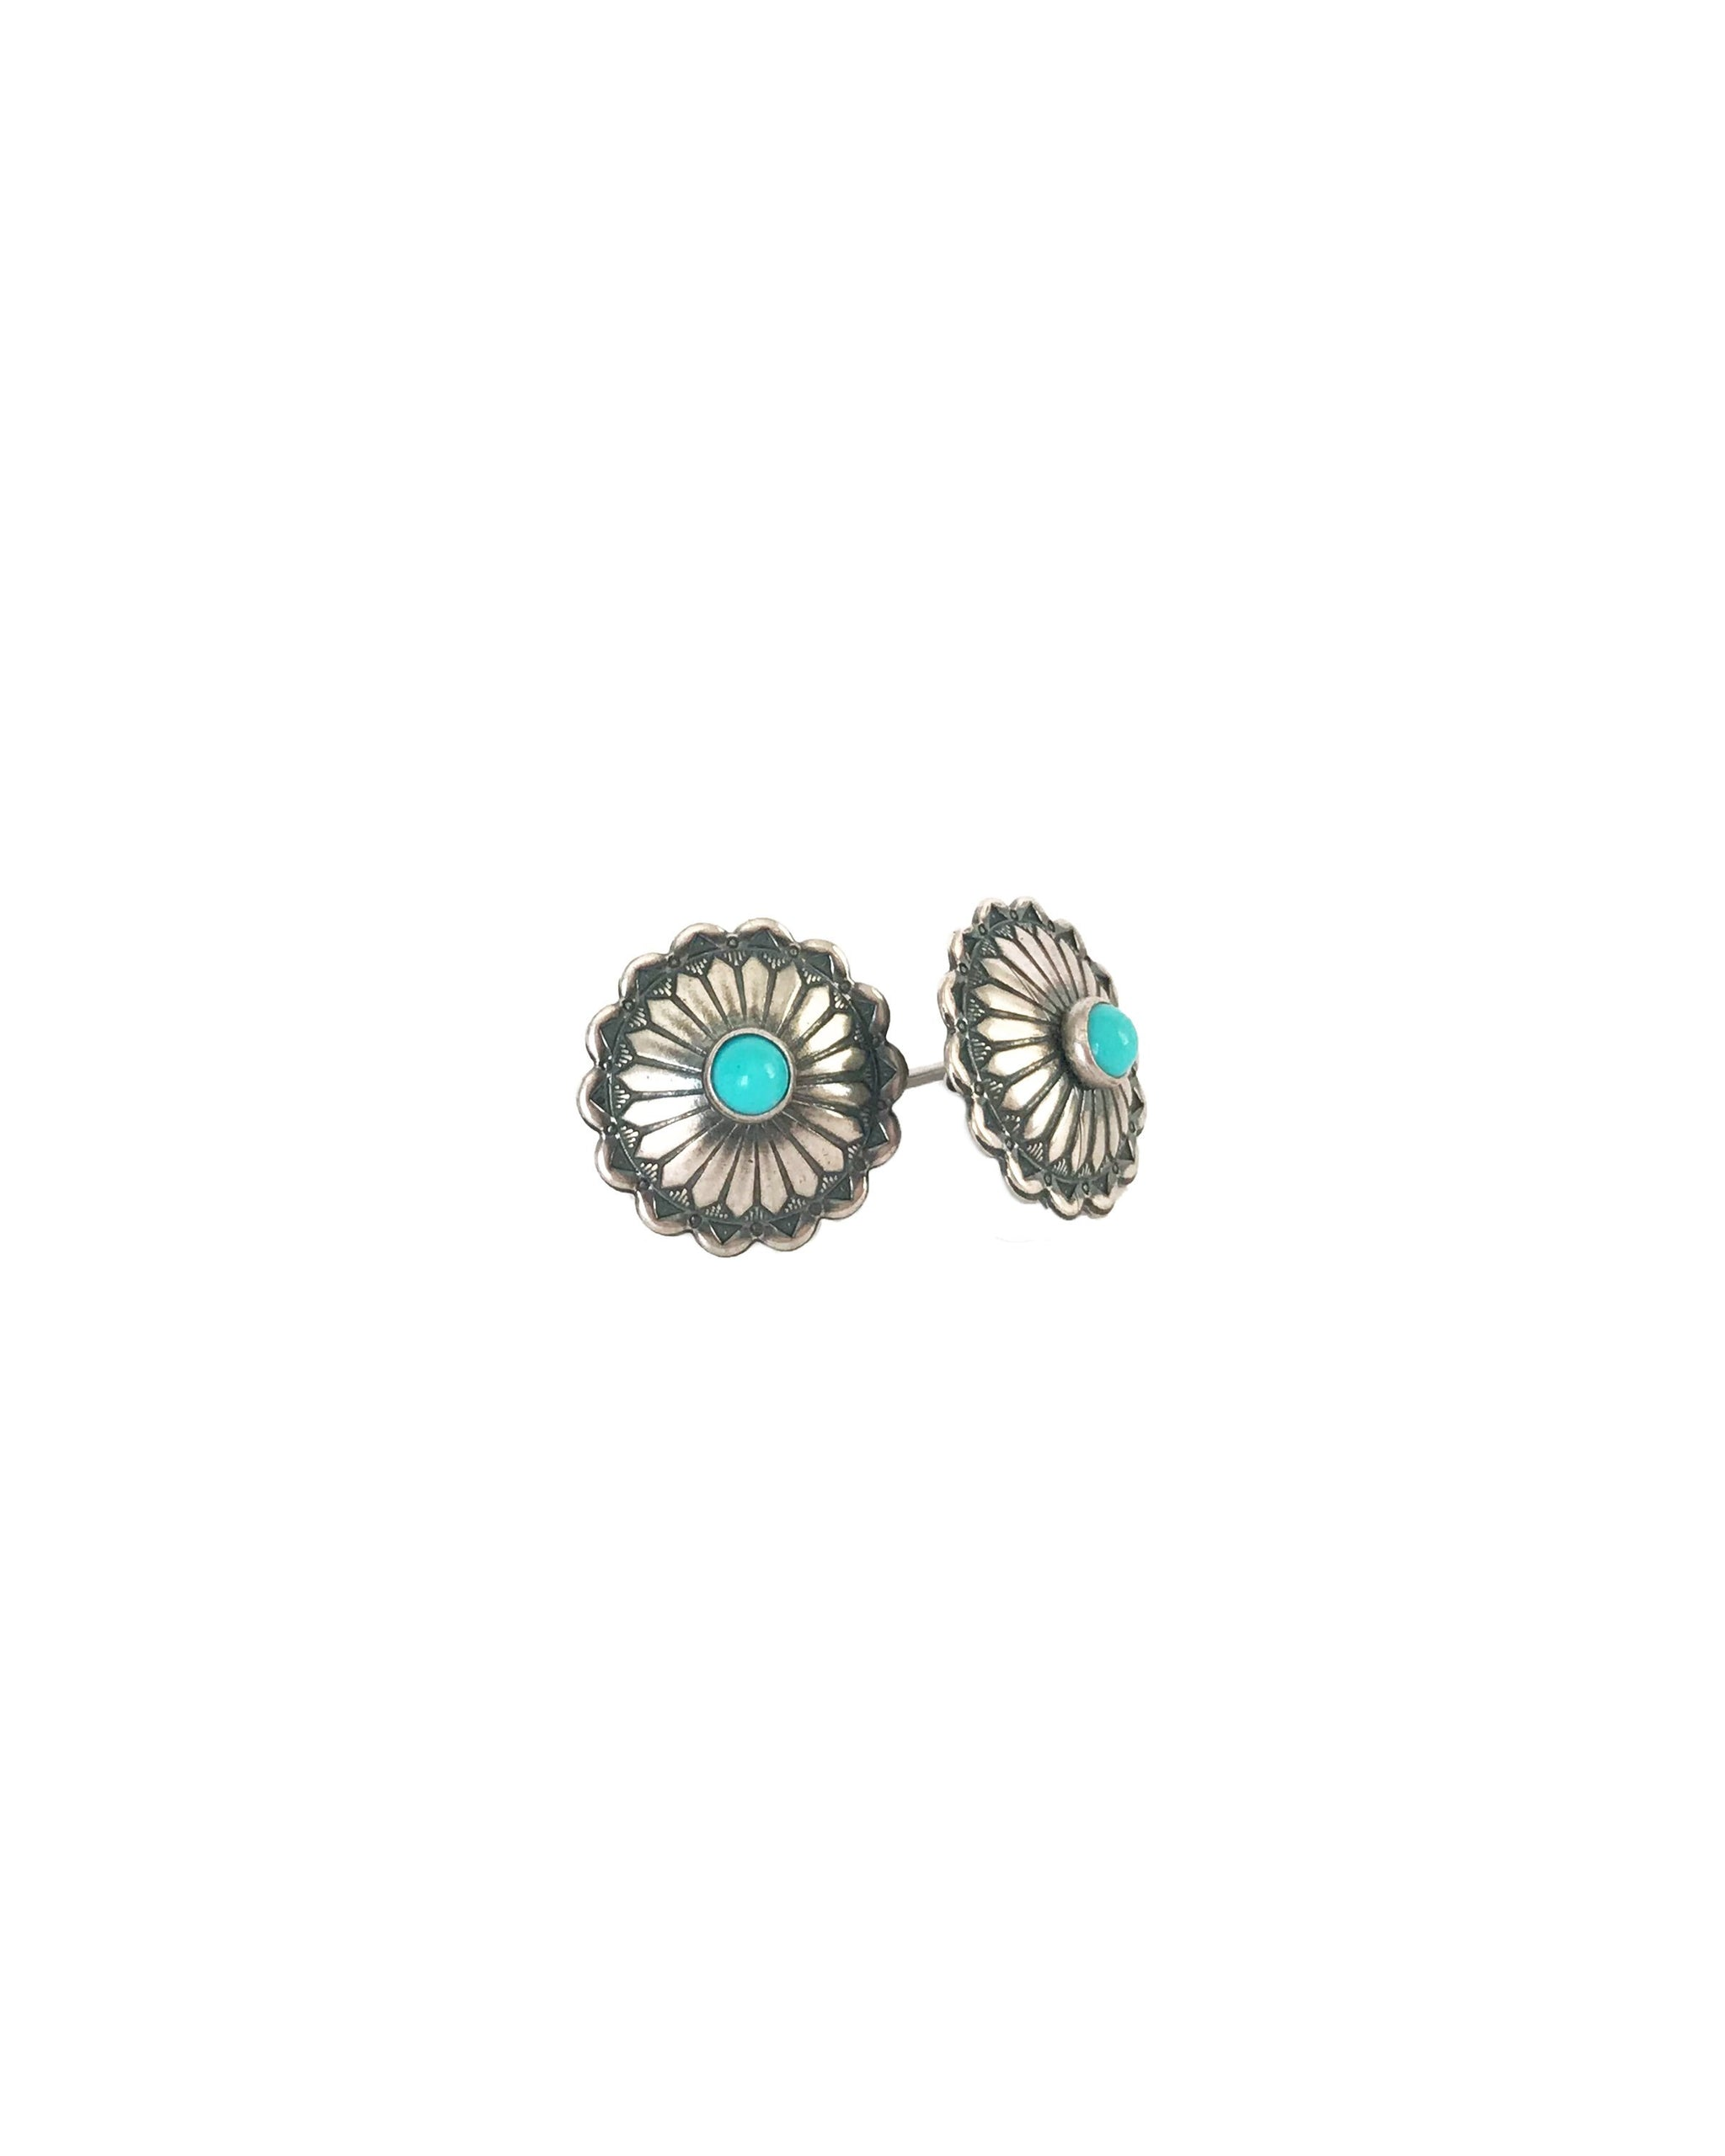 VINTAGE ISABELLA STUDS - TURQUOISE + TOBACCO